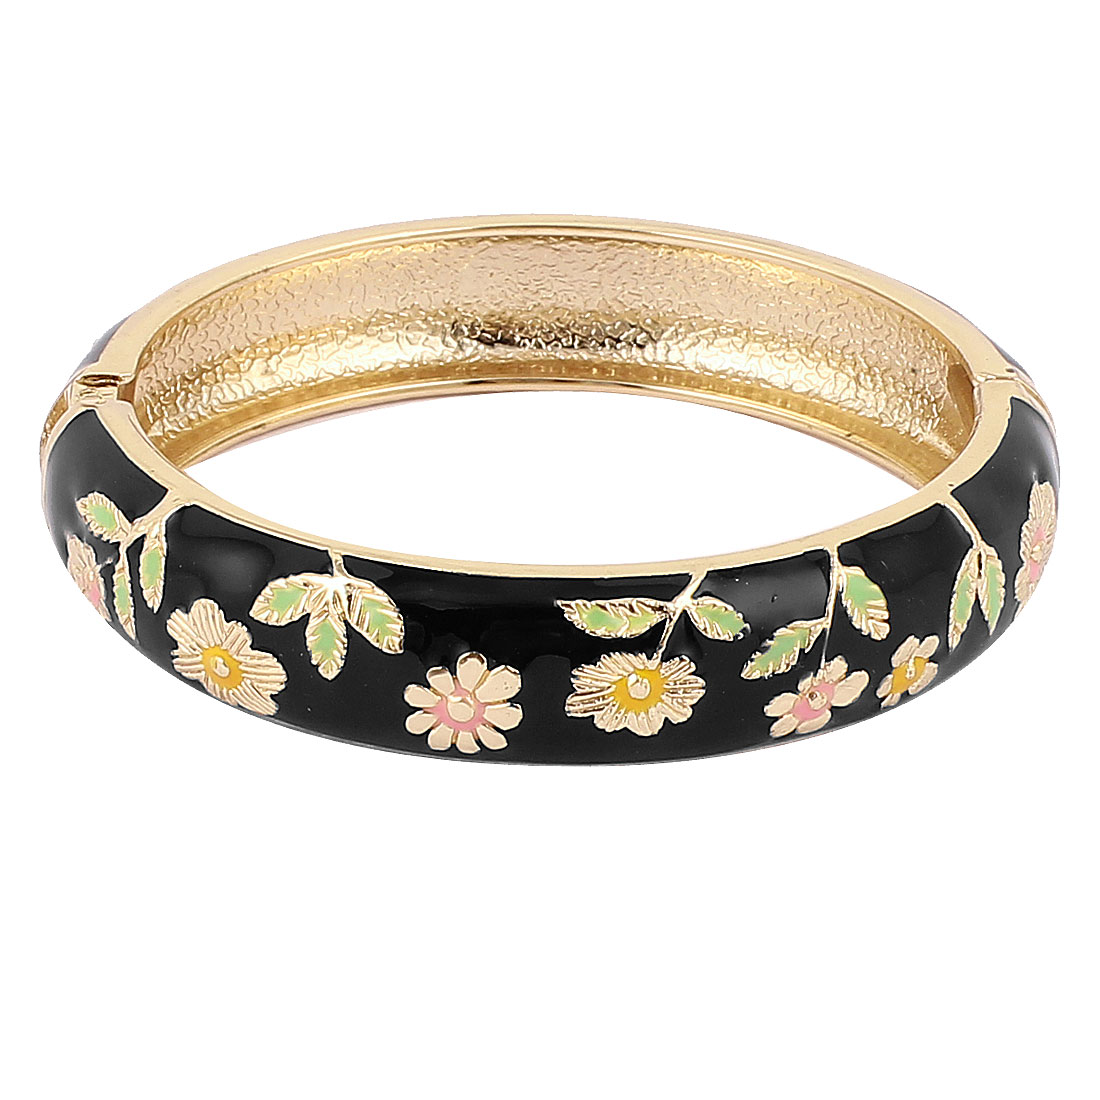 Lady Spring Loaded Wide Enamel Bangle Bracelet Jewelry Party Gift